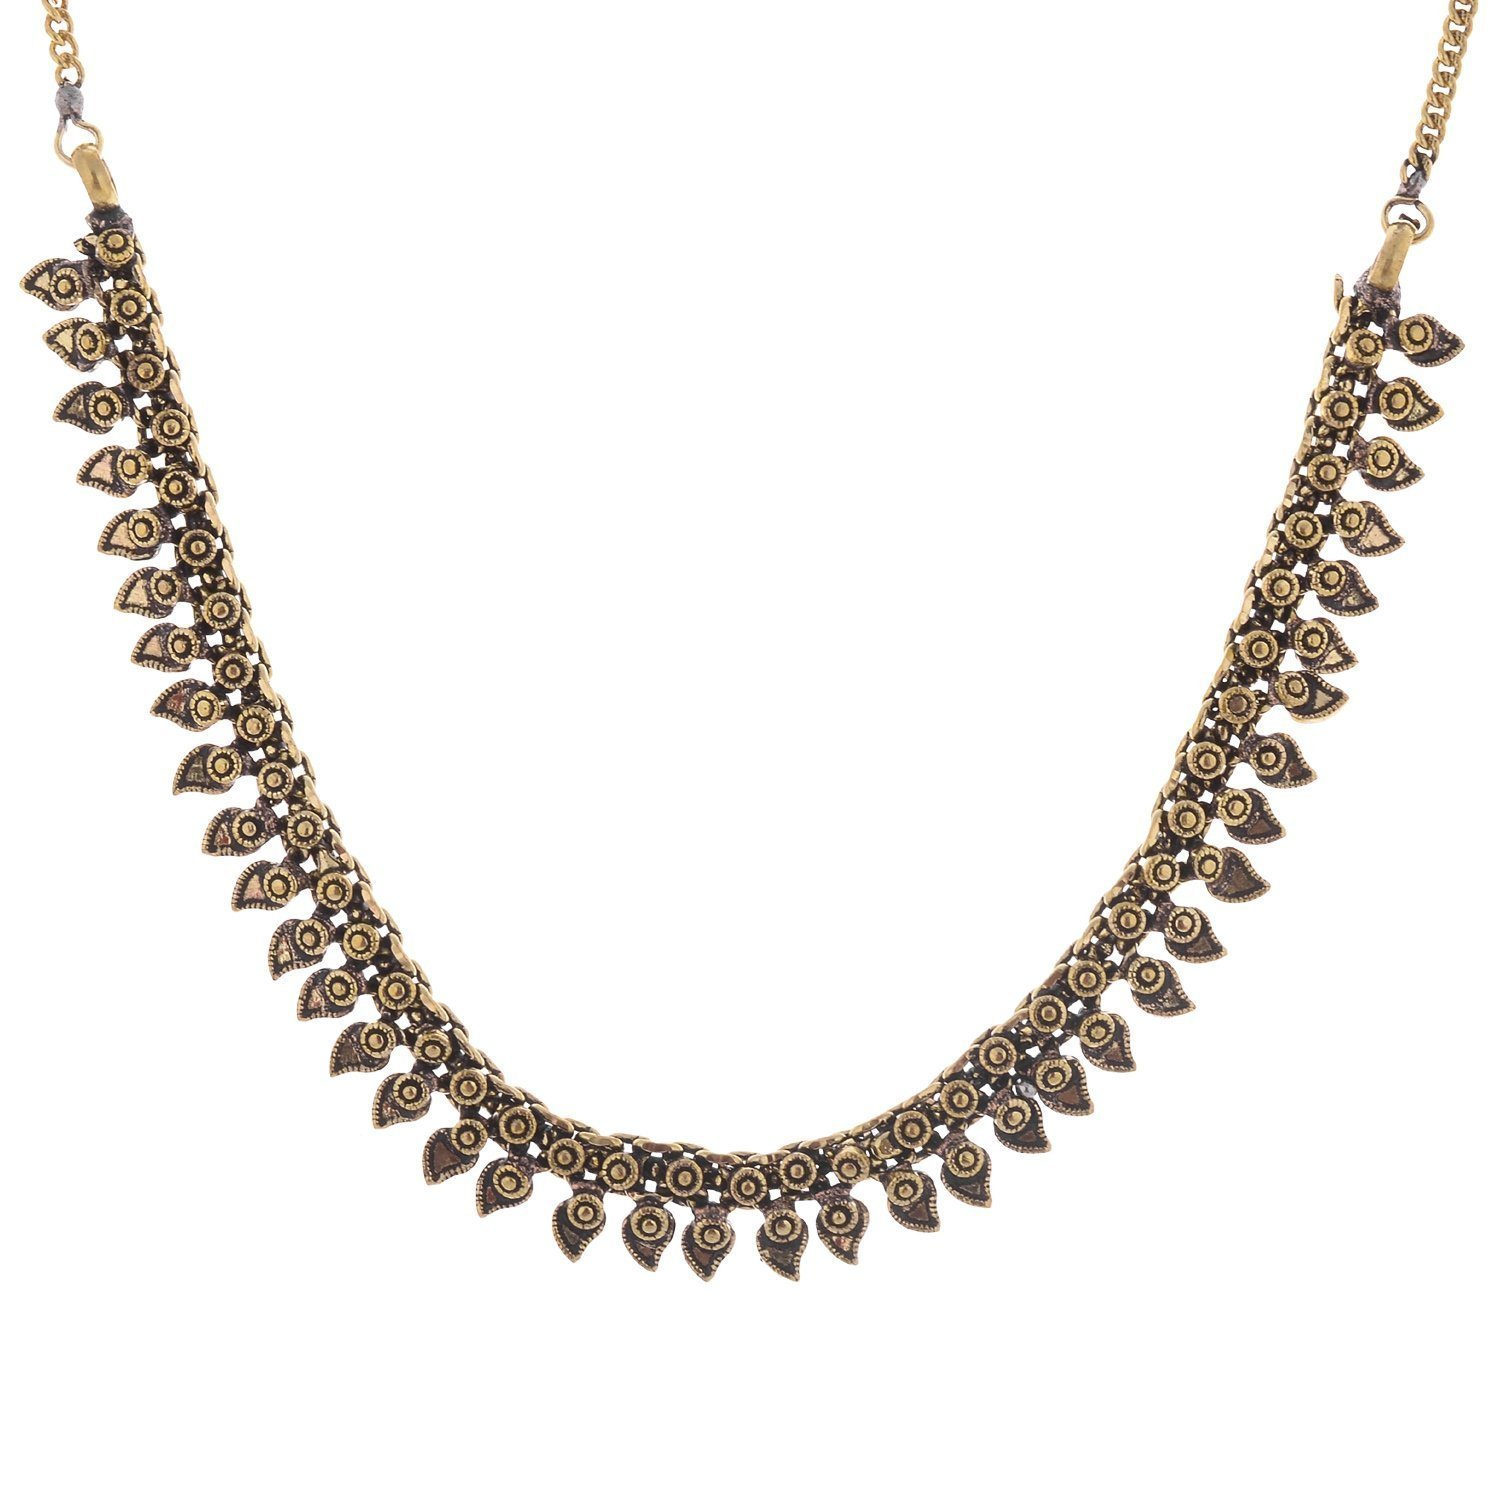 The Trendy Trendz India Oxidized Golden Necklace Set for Women and Girls